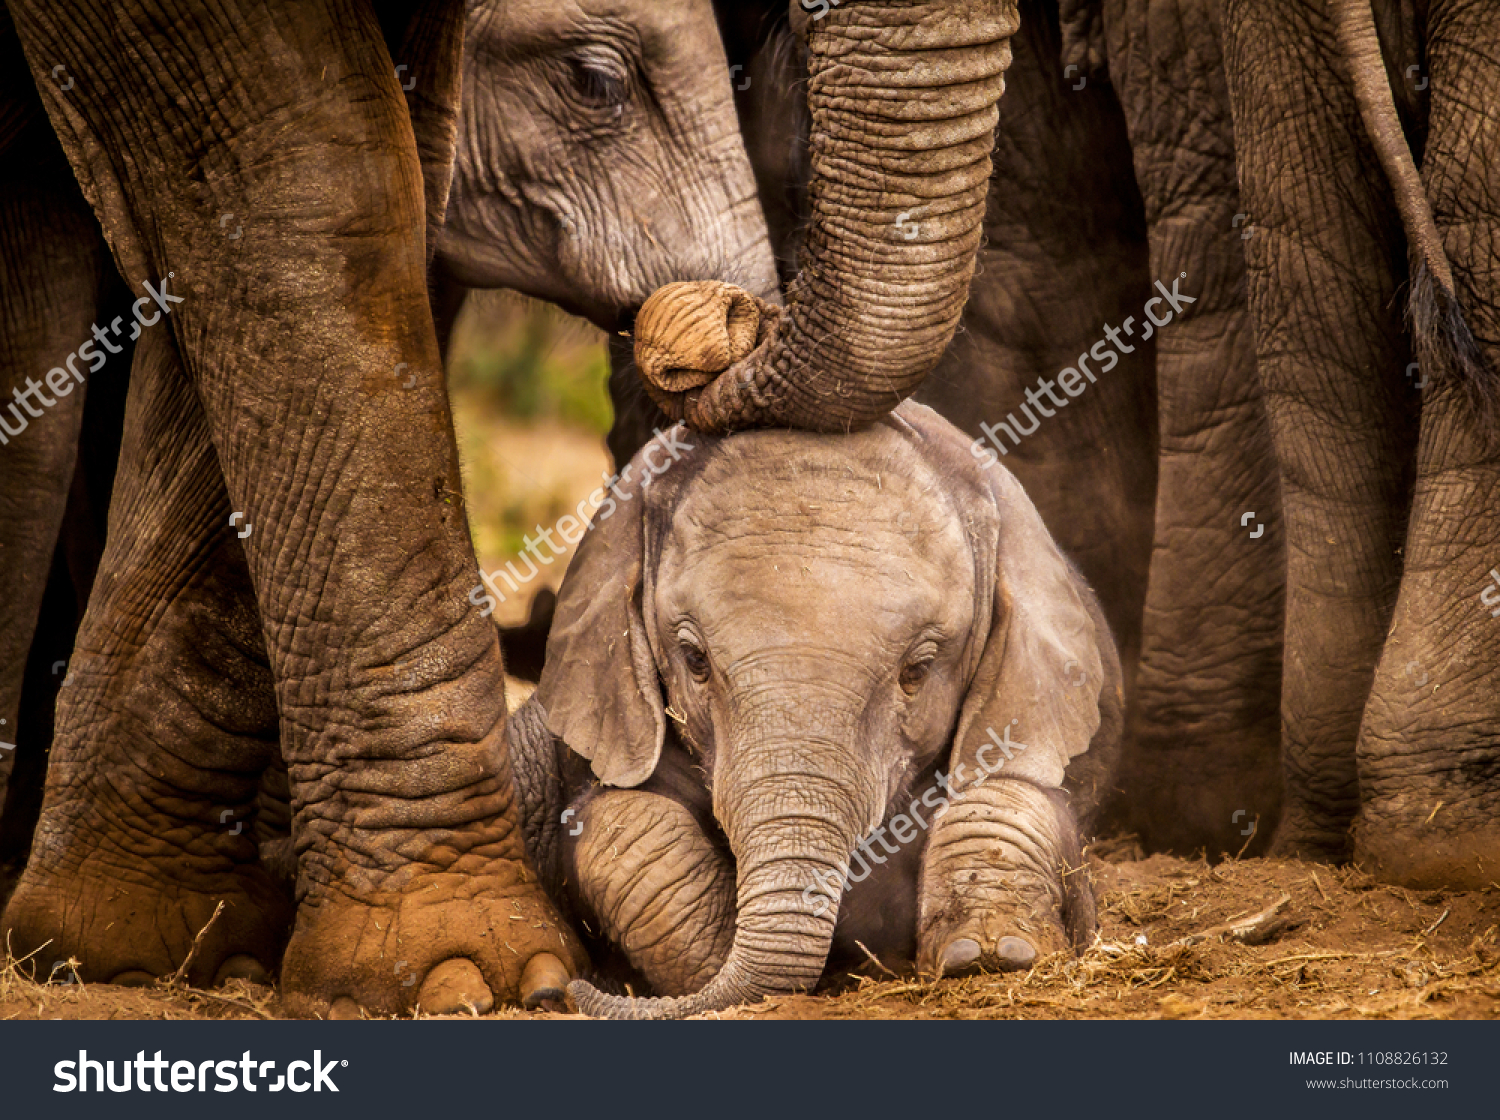 Baby African elephant under the protection of the adults in the herd #1108826132